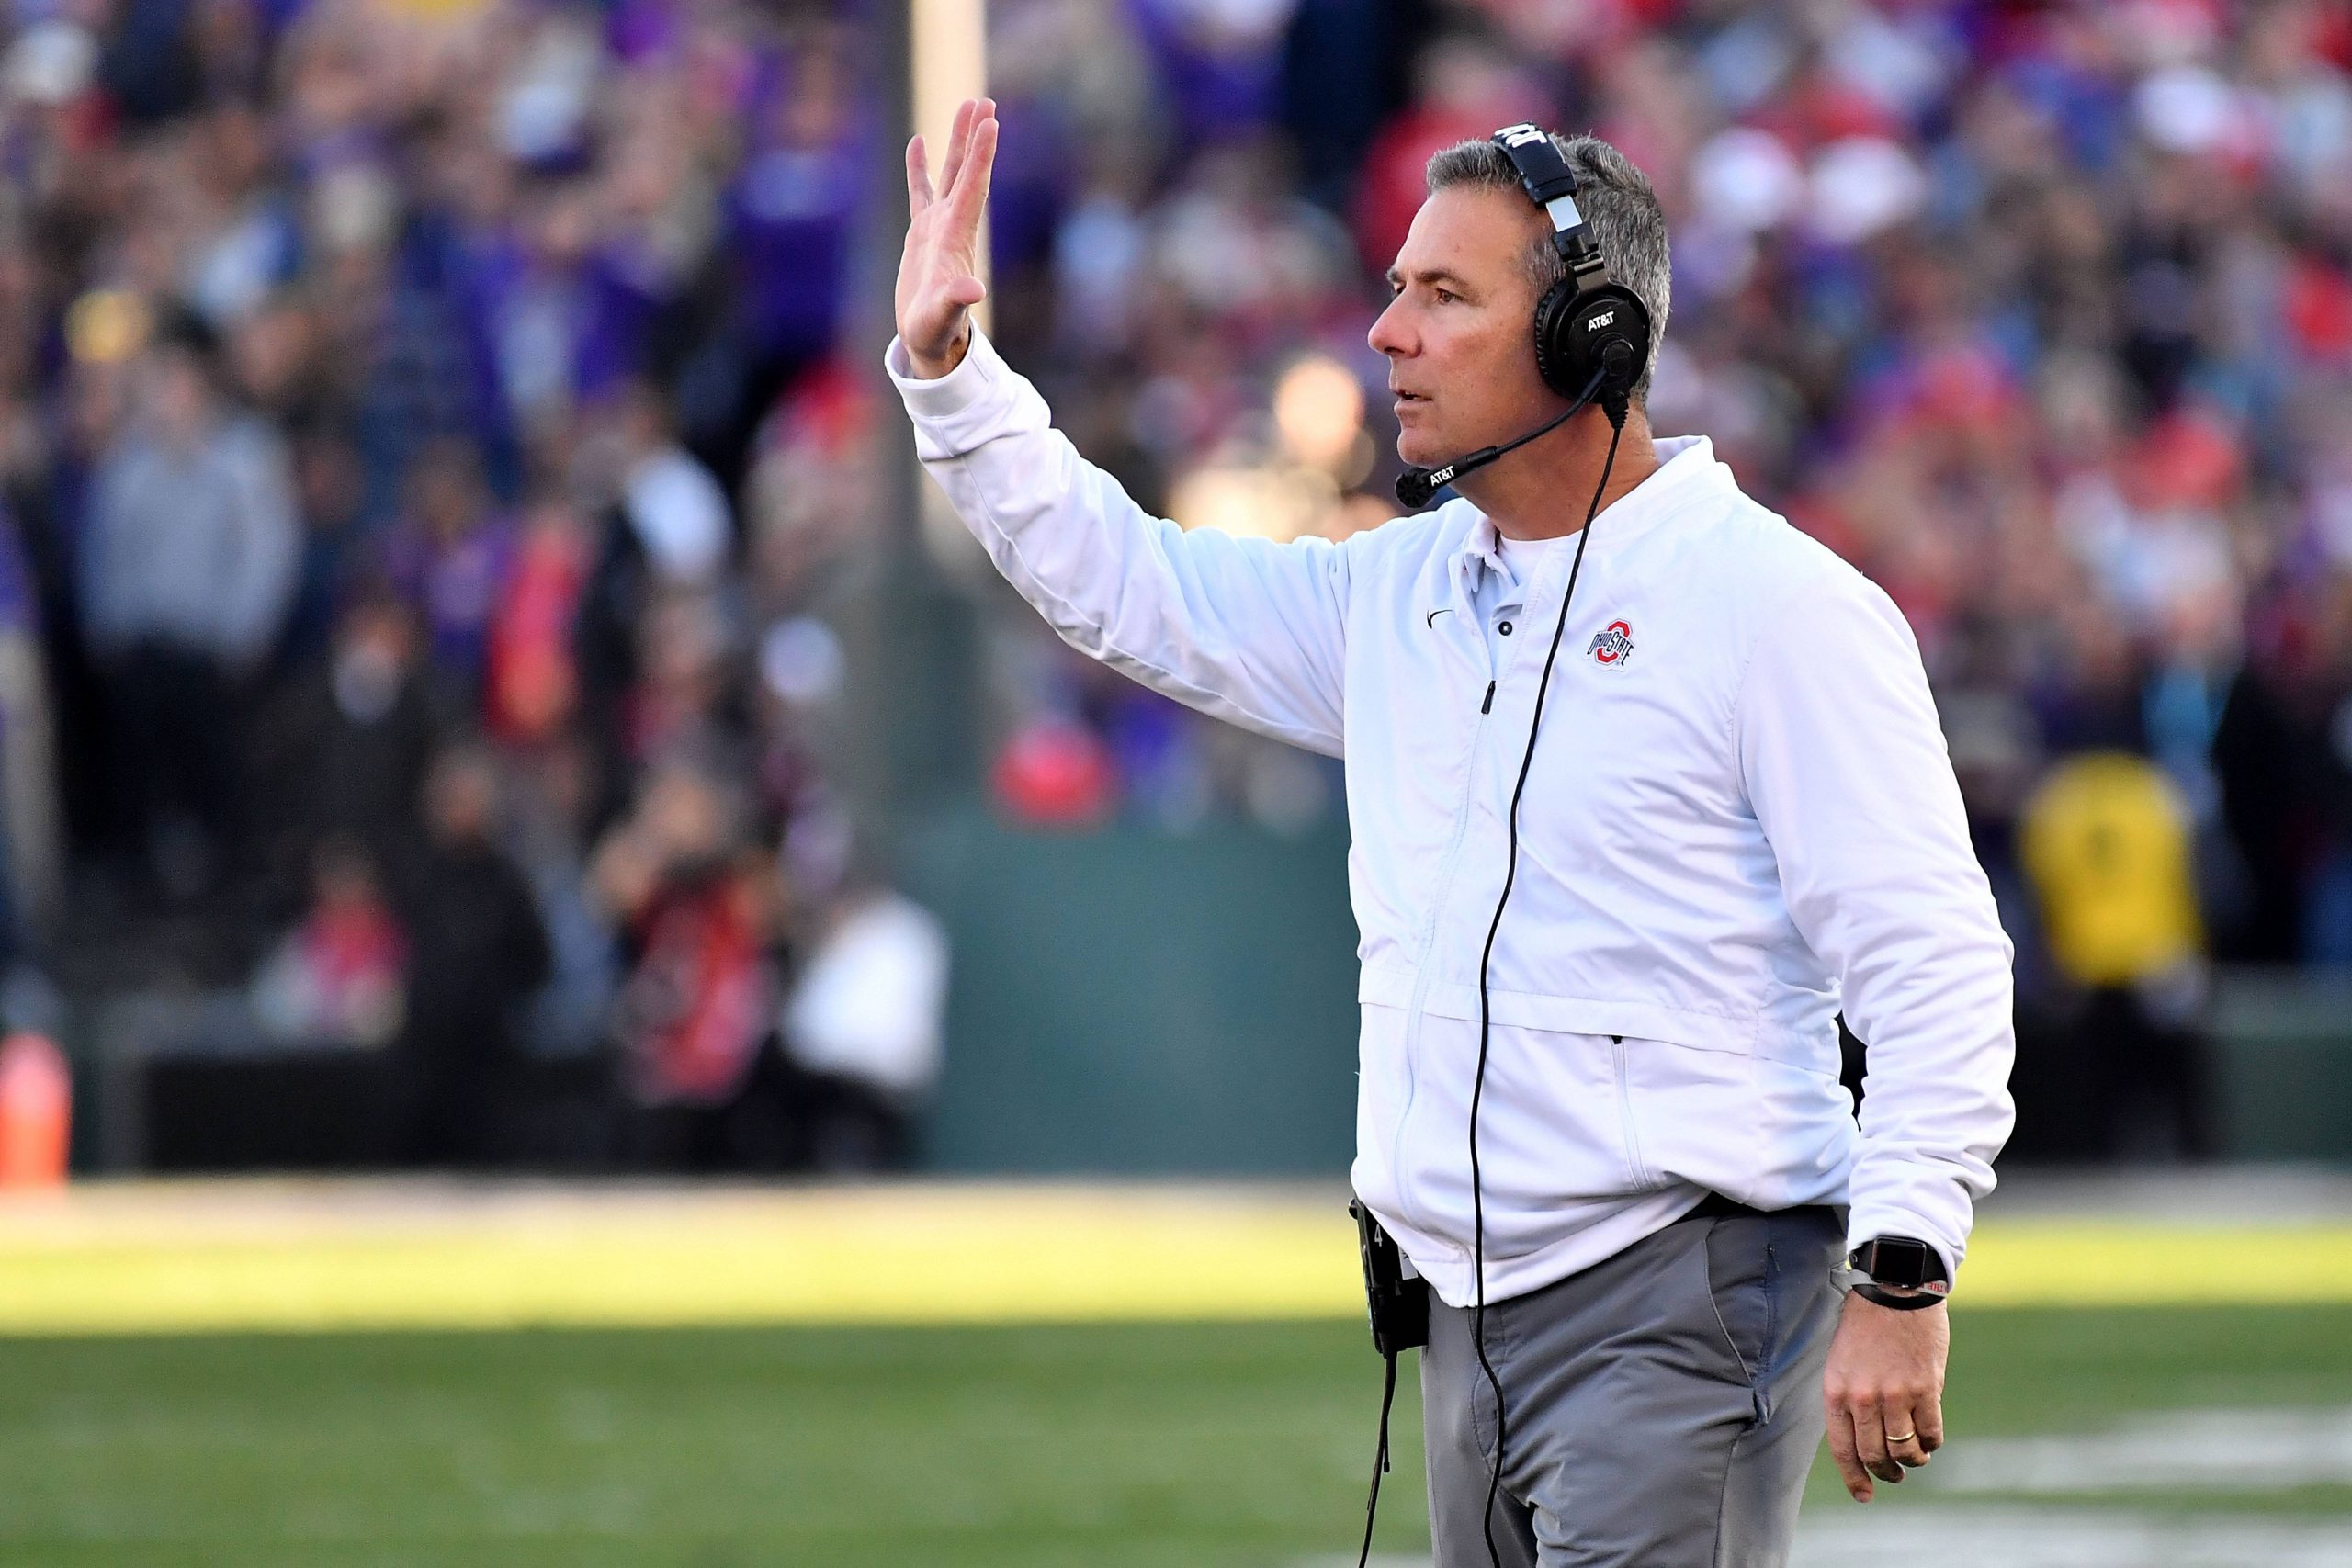 January 1 2019 Pasadena California U S Ohio State Buckeyes head coach Urban Meyer during the